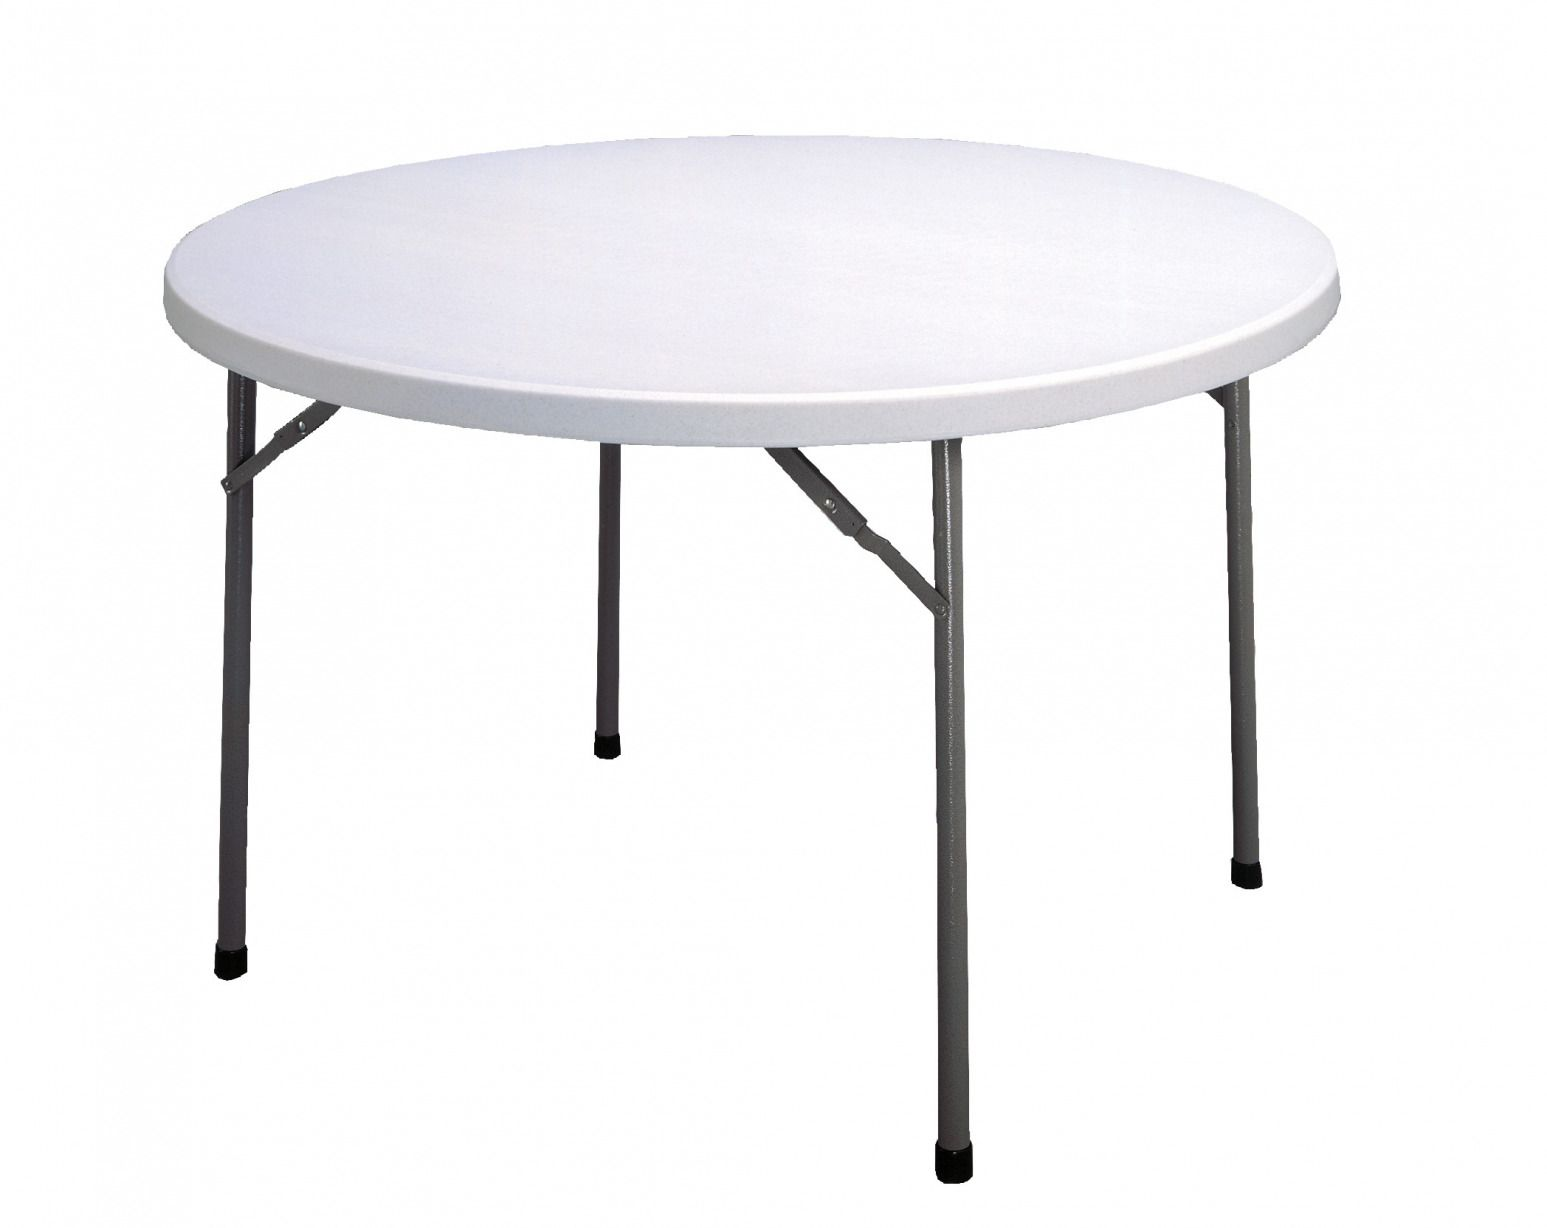 Pin By Annora On Round End Table Round Folding Table